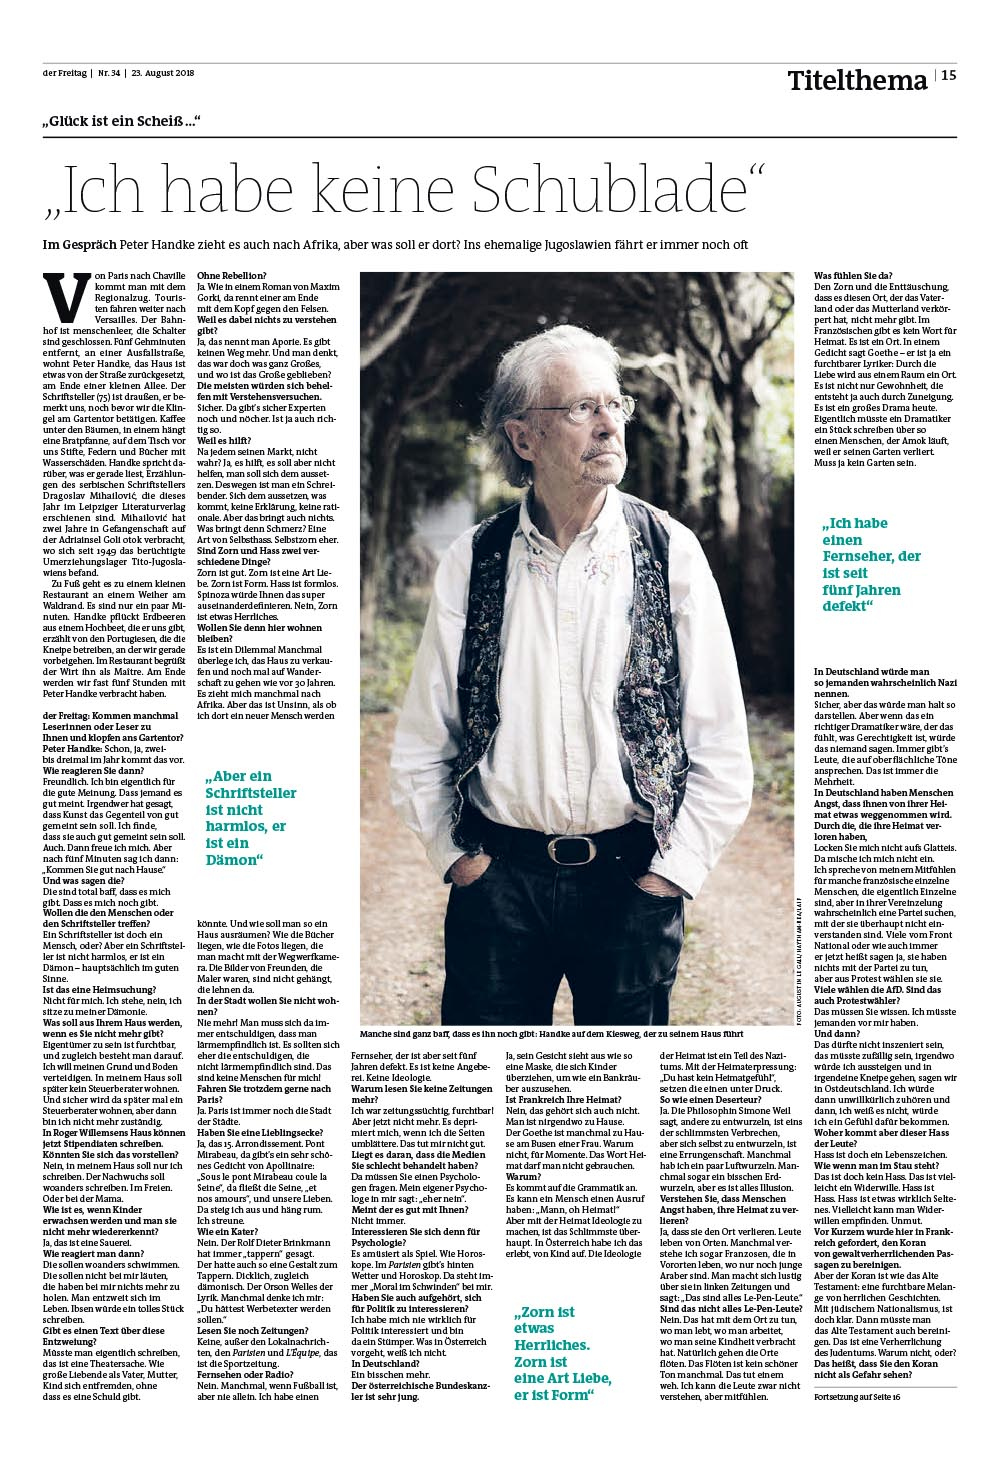 Portrait of writer Peter Handke in Der Freitag. 2018.08.22